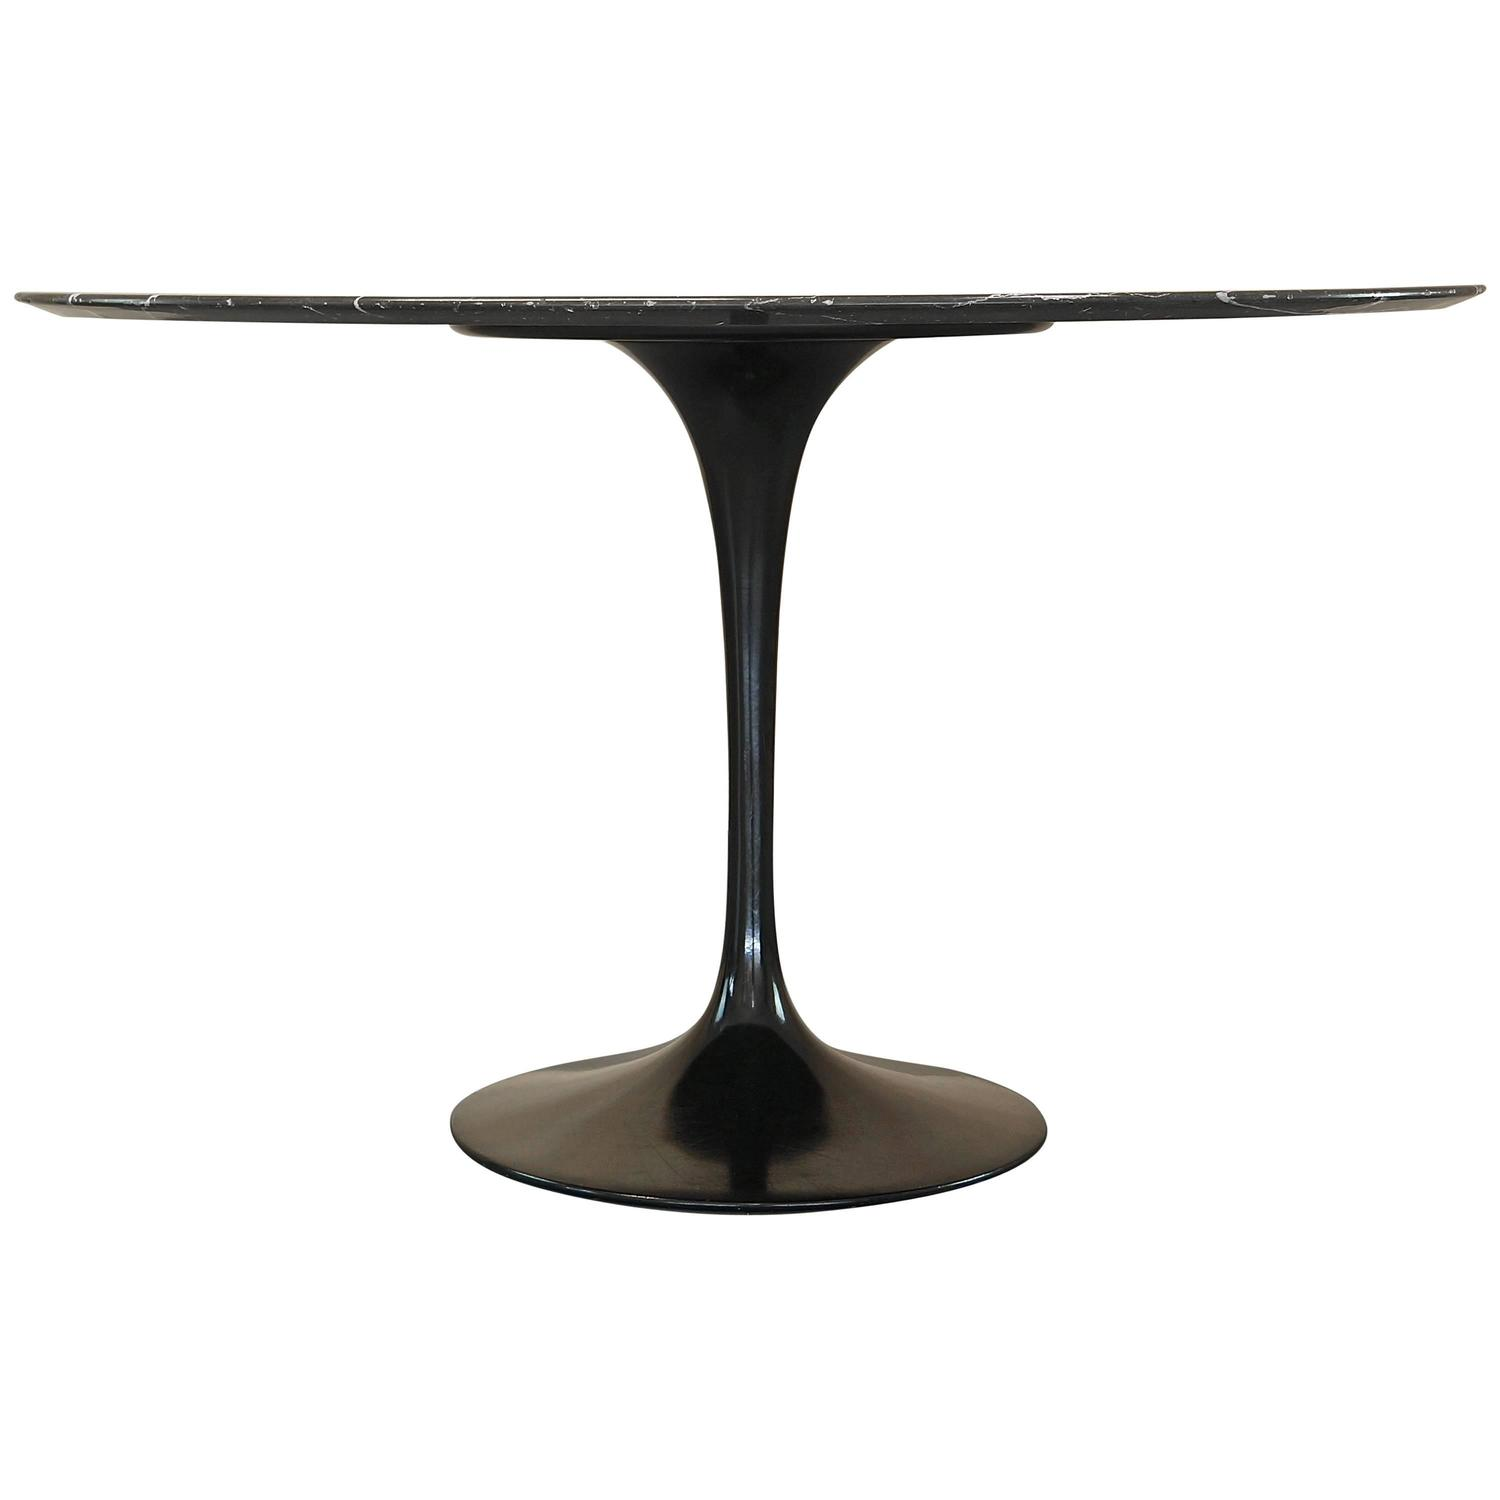 Eero Saarinen Black Nero Marble Tulip Dining Table for Knoll Mid